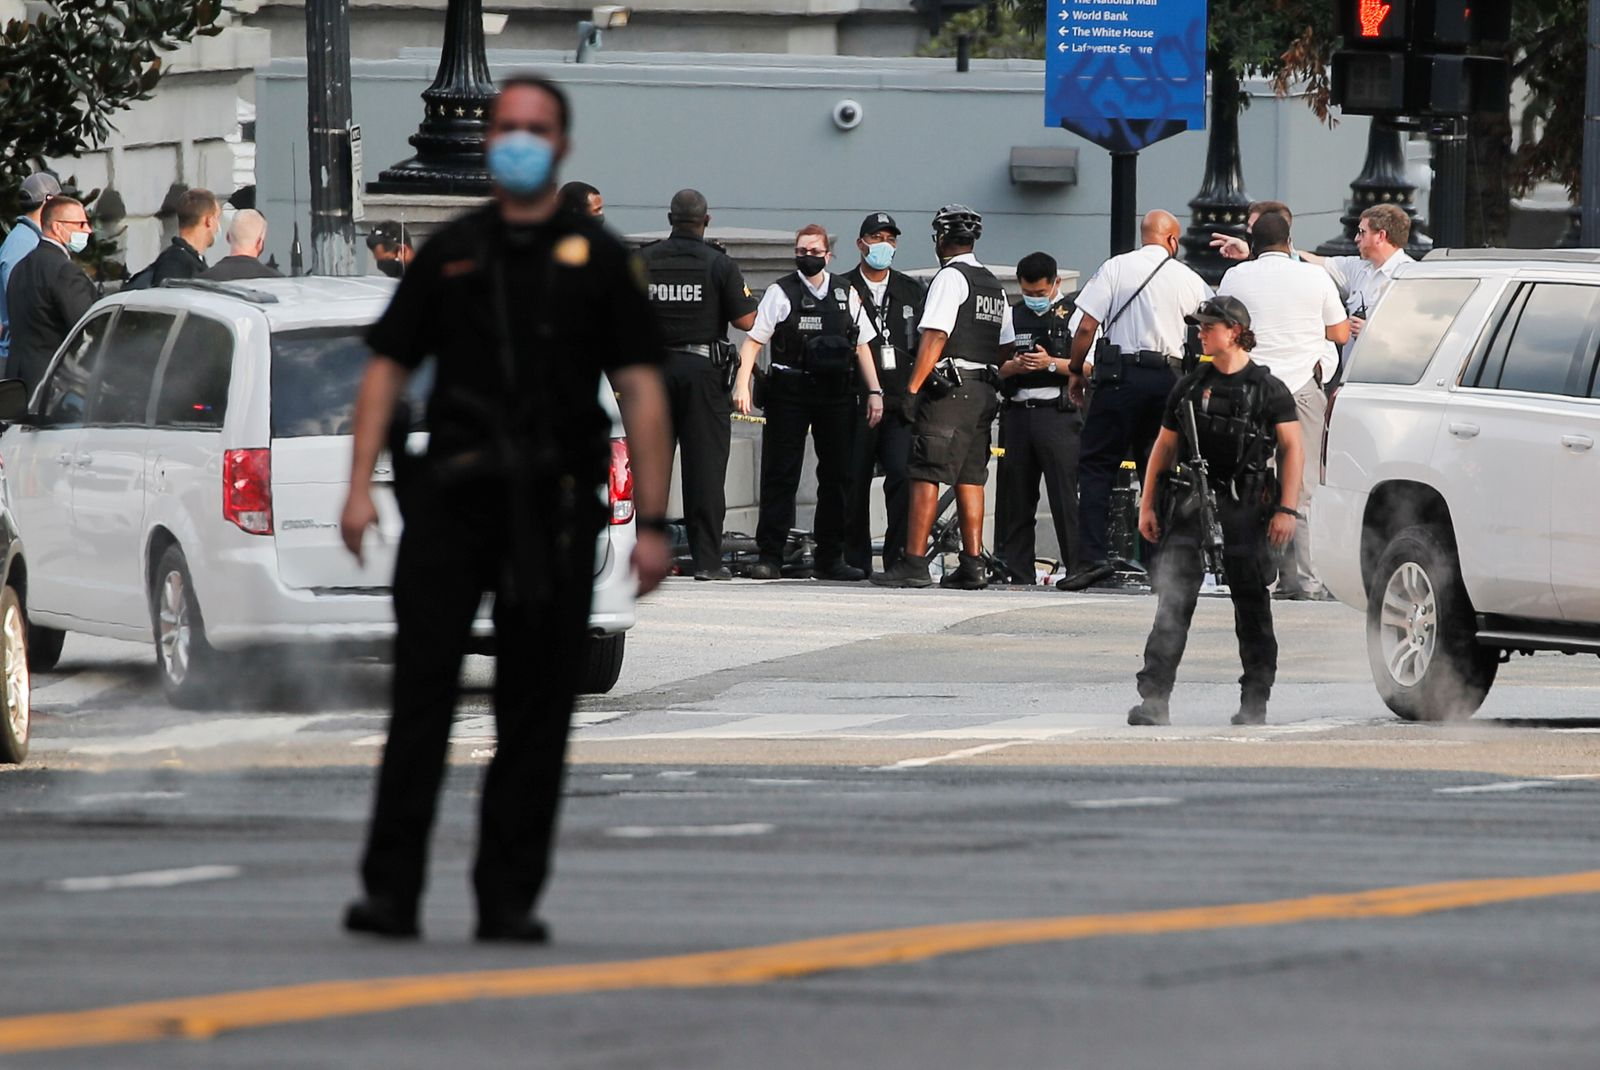 Police officers stand guard at the corner of 17th Street and Pennsylvania Avenue, near the White House, in Washington